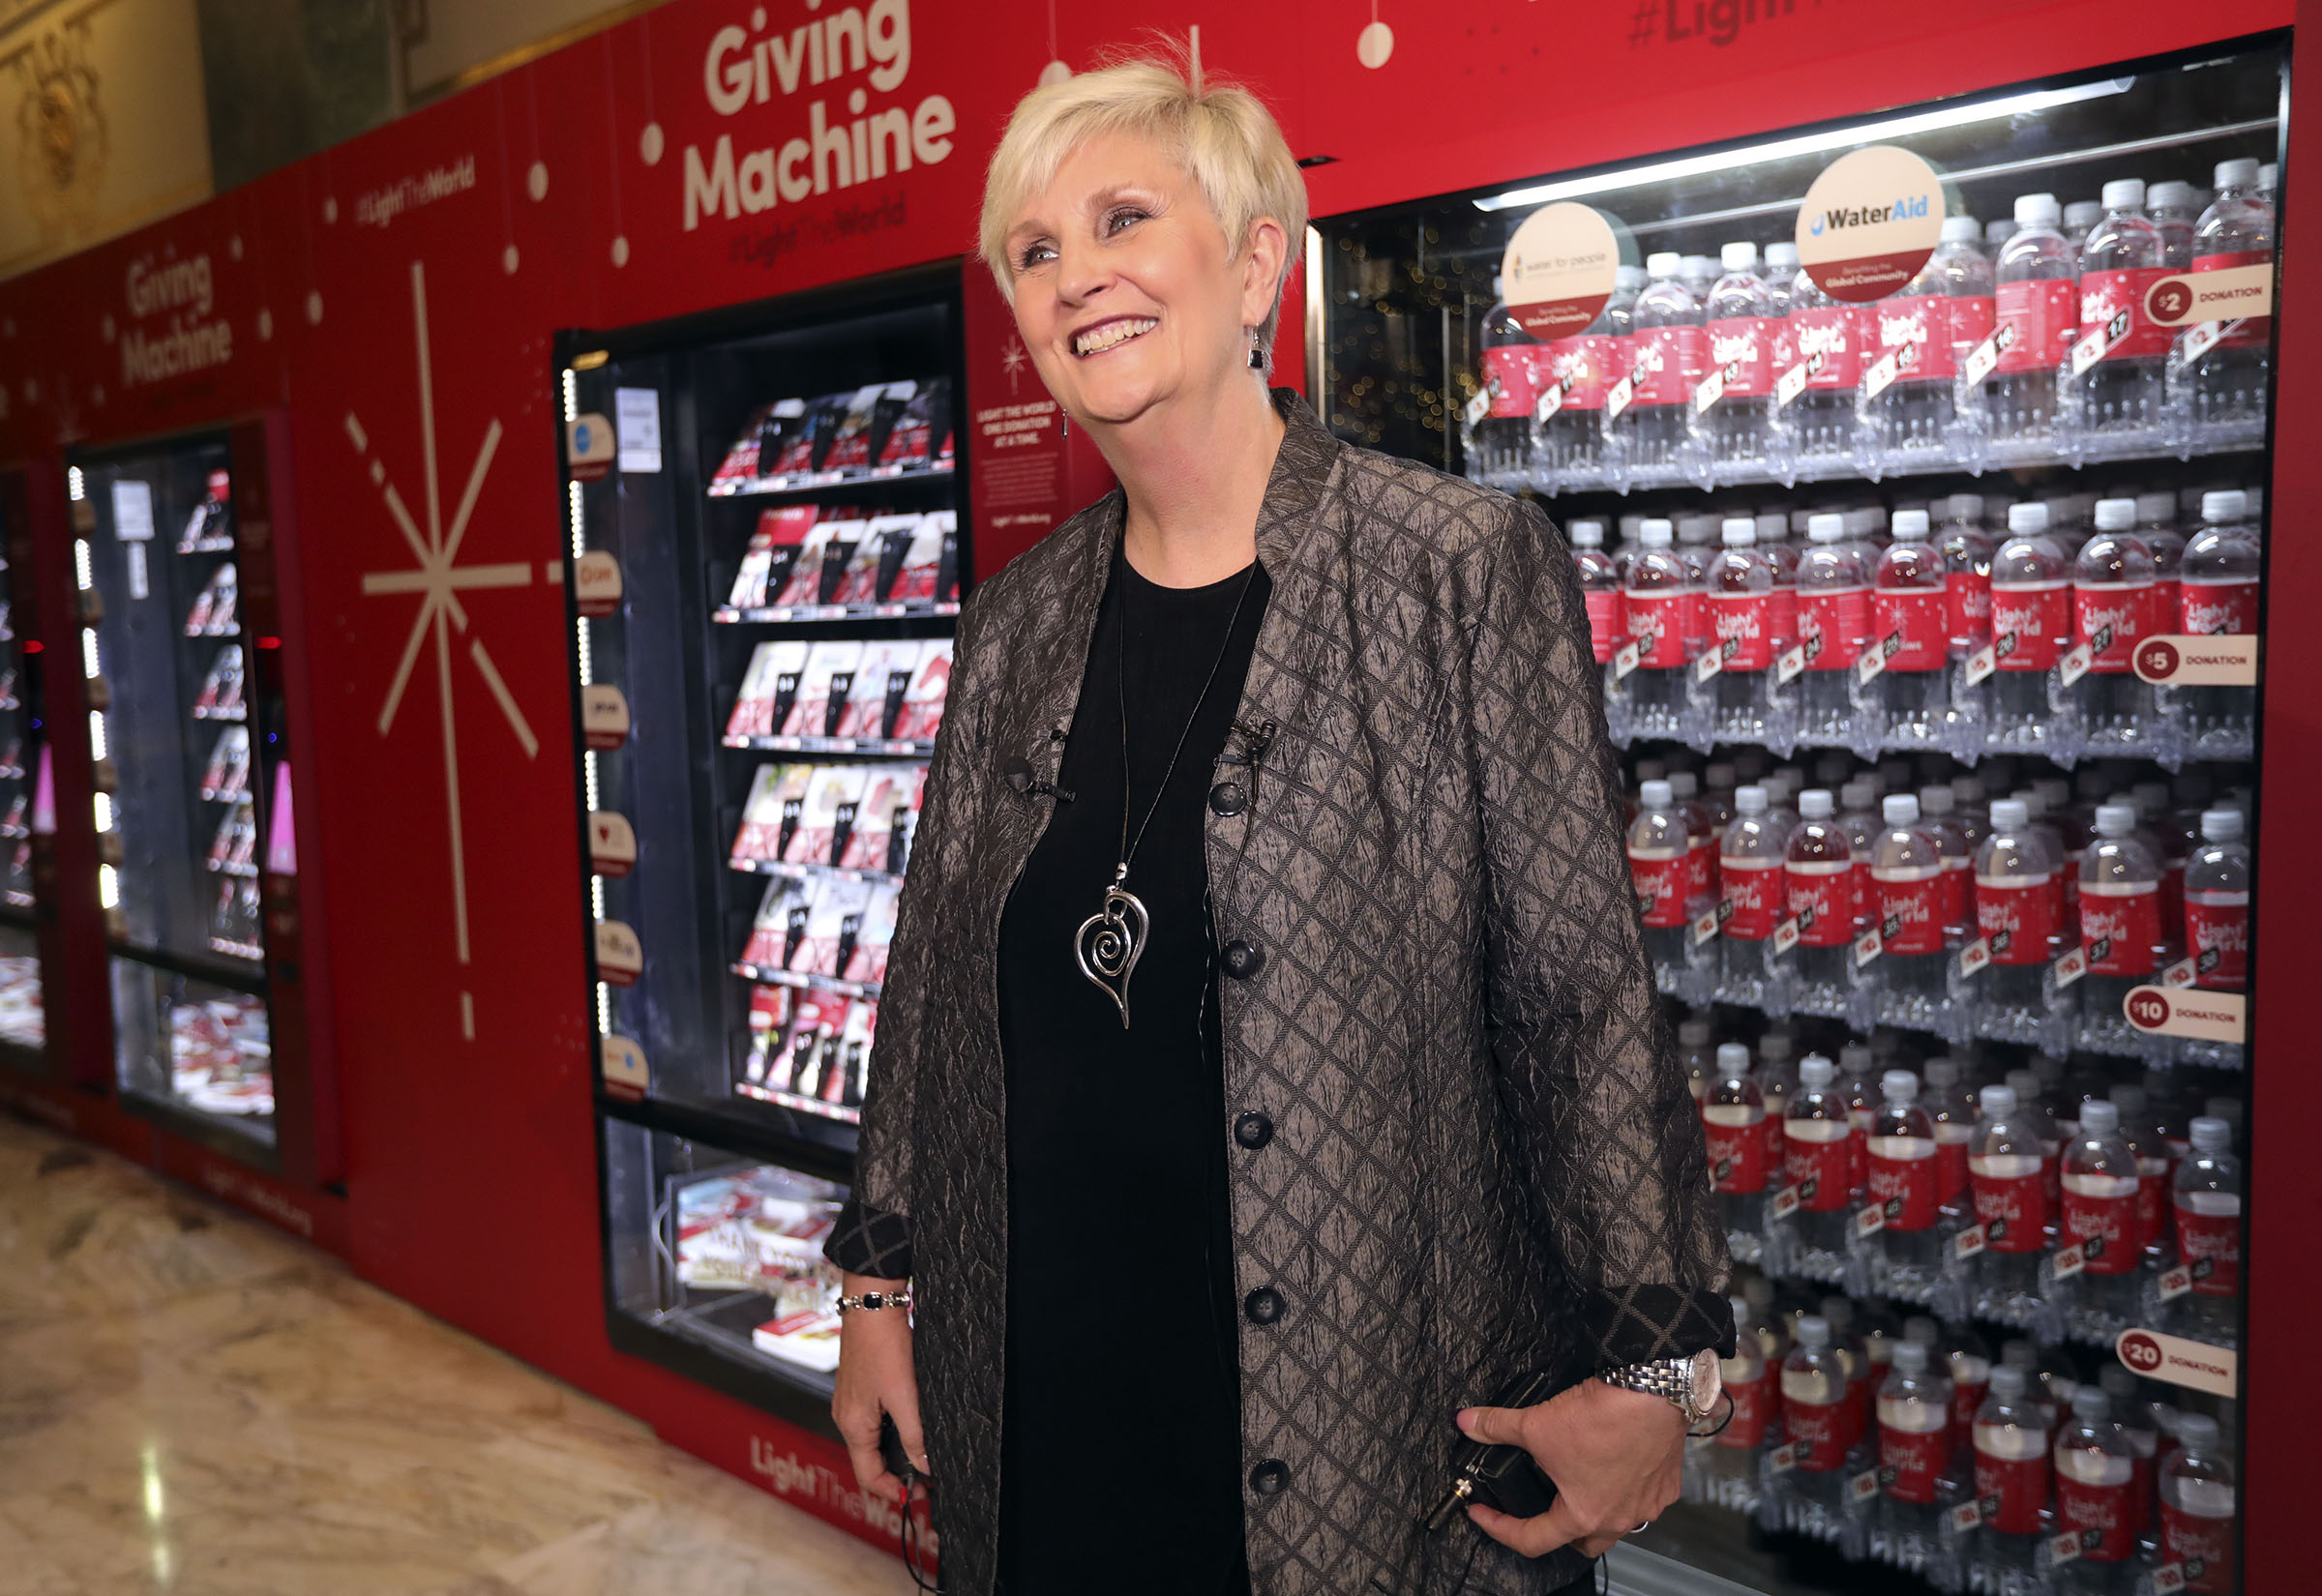 Ginette Bott, president and CEO of the Utah Food Bank, talks about the Light the World Giving Machine in the lobby of the Joseph Smith Memorial Building in Salt Lake City on Wednesday, Nov. 28, 2018.